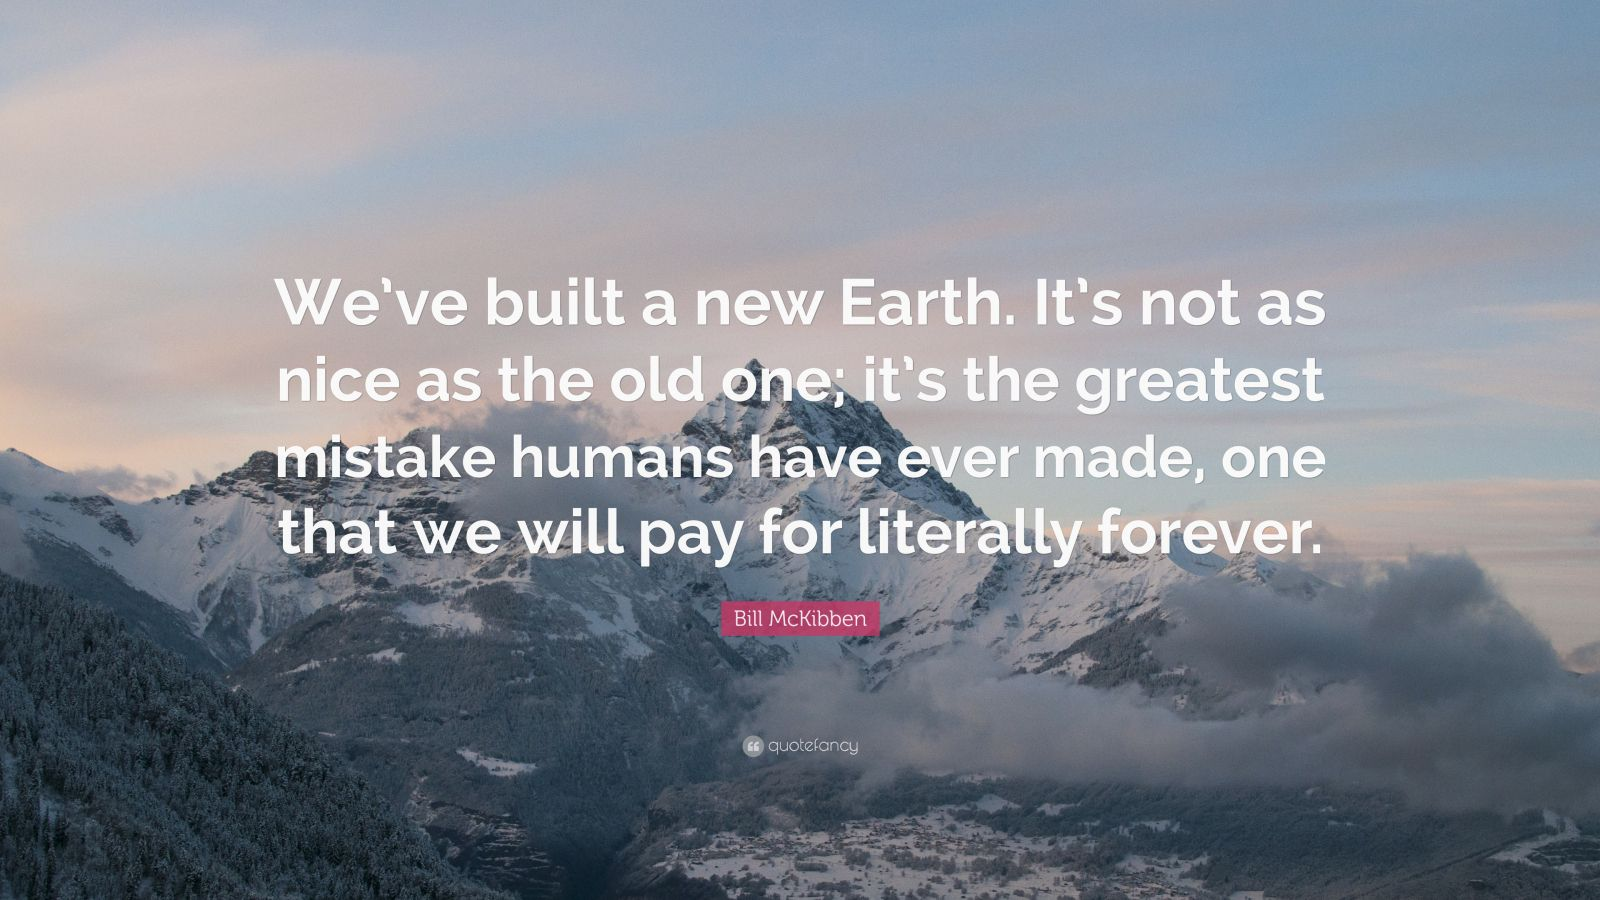 """Bill McKibben Quote: """"We've built a new Earth. It's not as nice as the old one; it's the greatest mistake humans have ever made, one that we will pay for literally forever."""""""